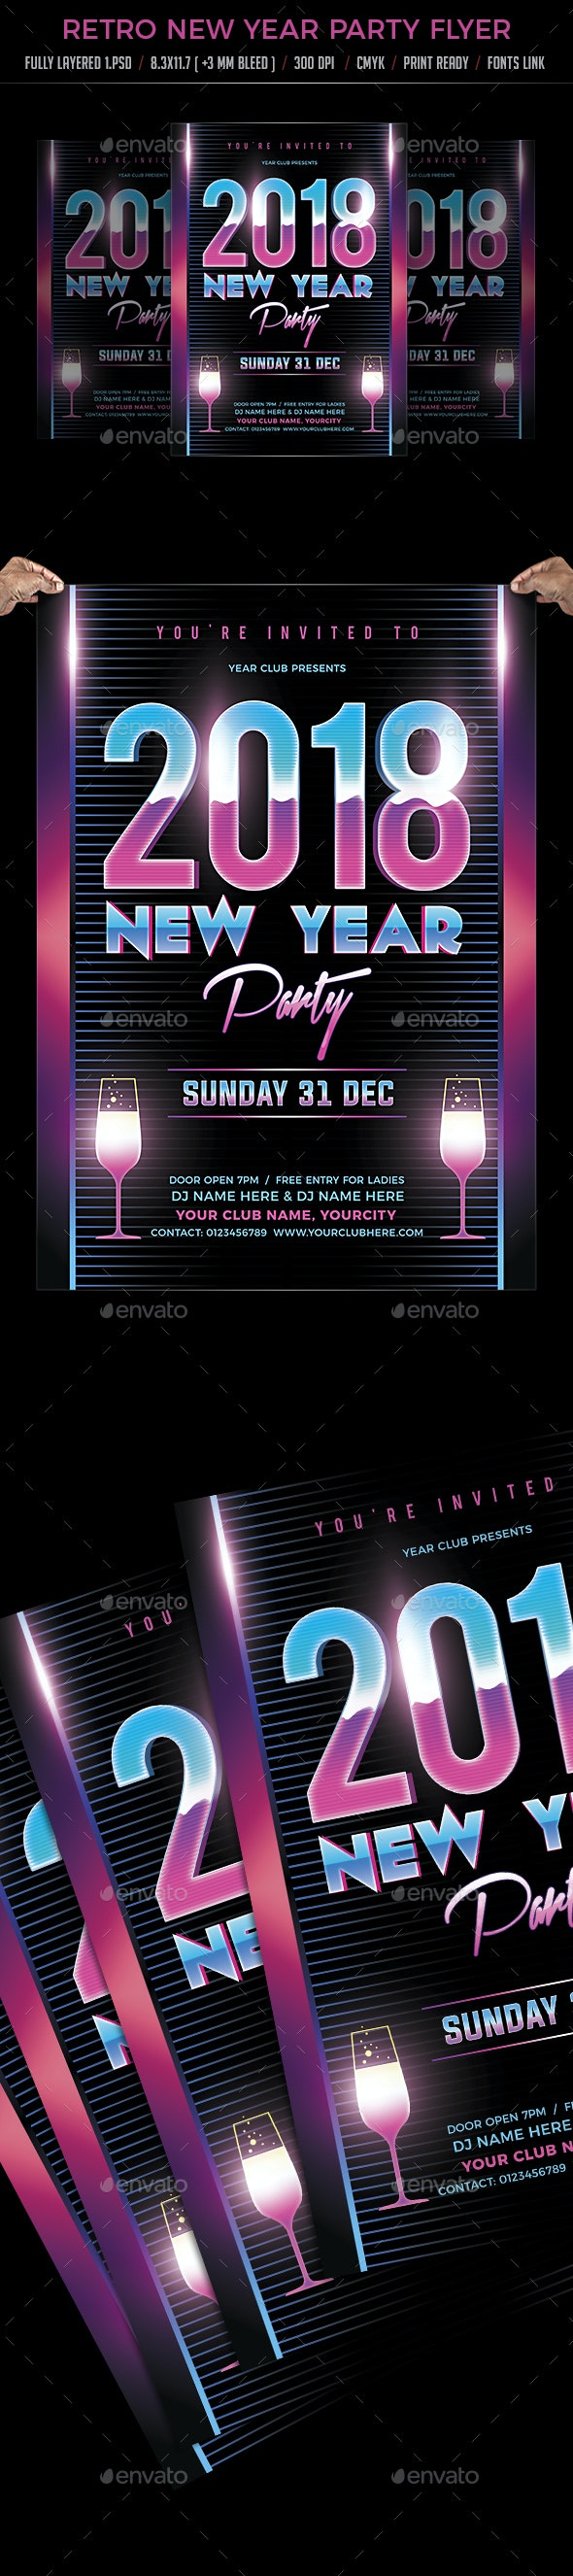 Retro New Year Party Flyer - Clubs & Parties Events